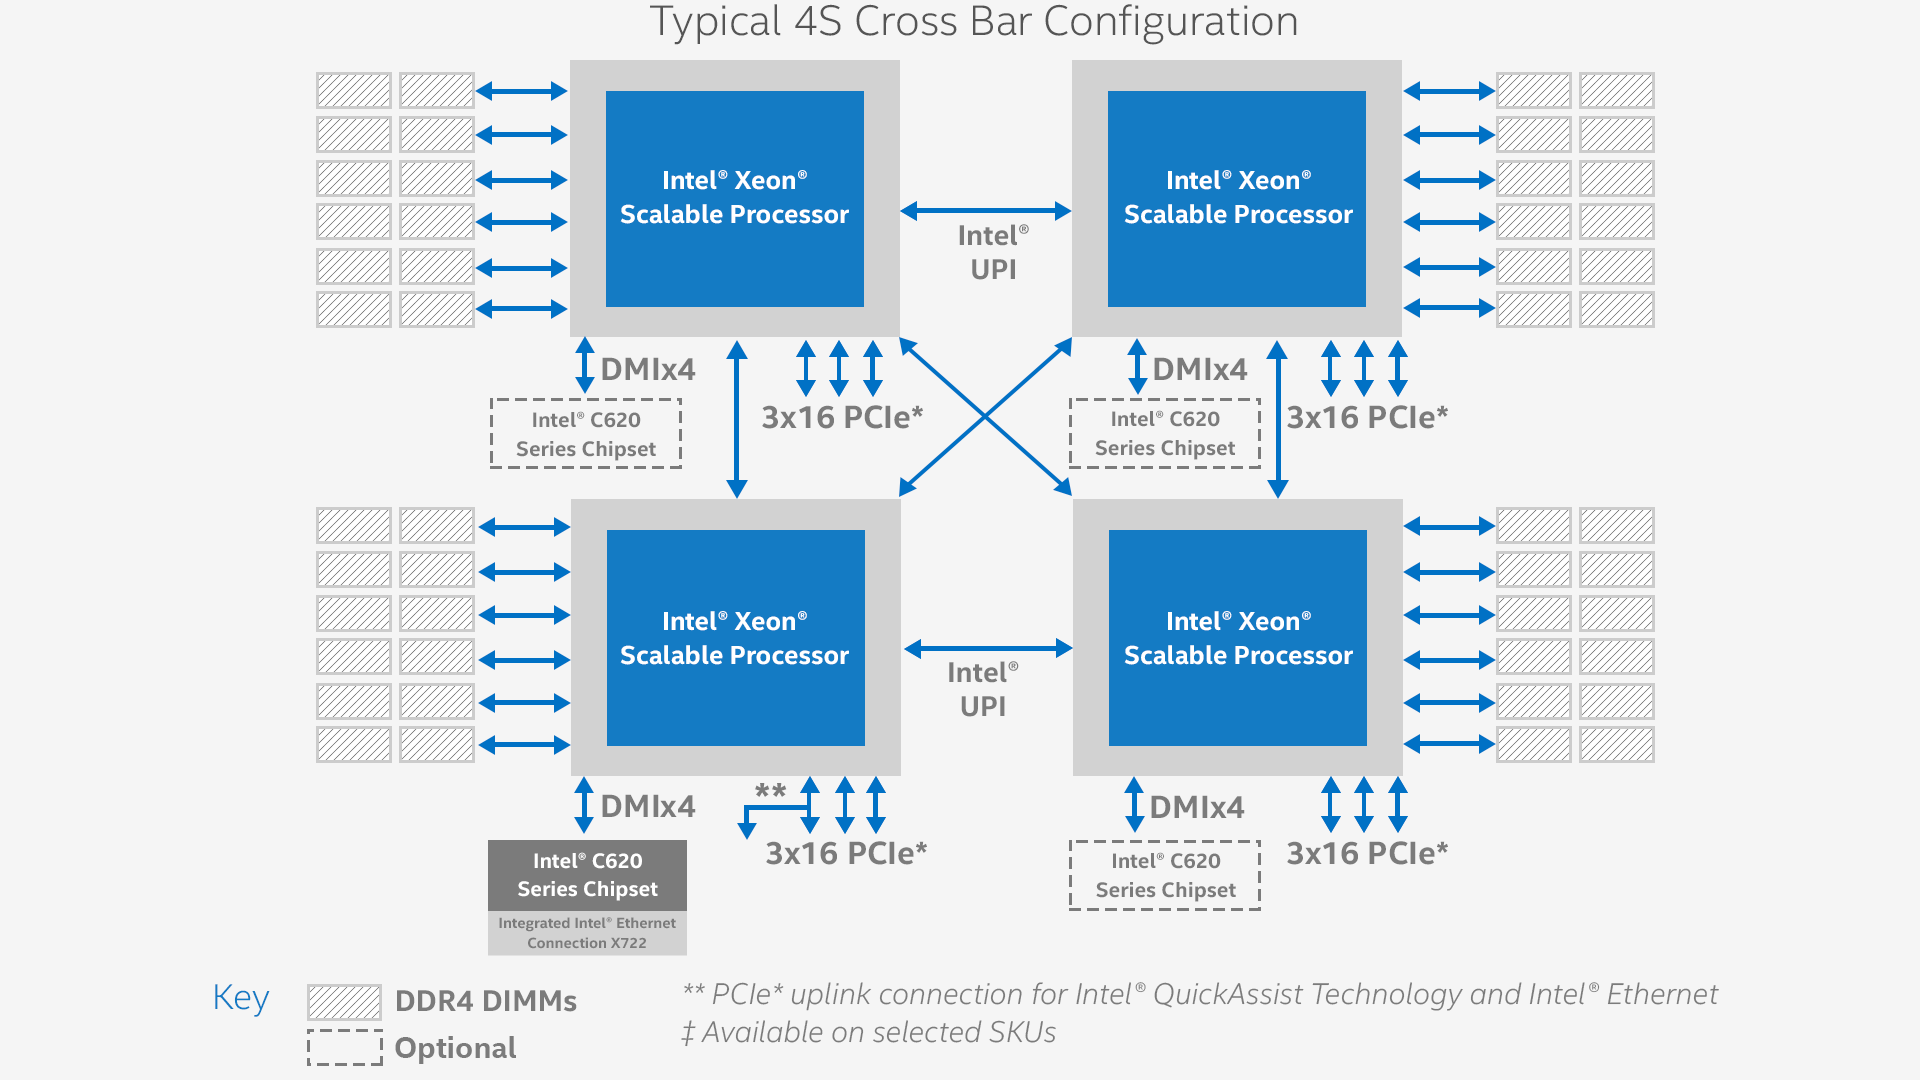 Intel® Xeon® Processor Scalable Family Block Diagram: 4S Cross Configuration